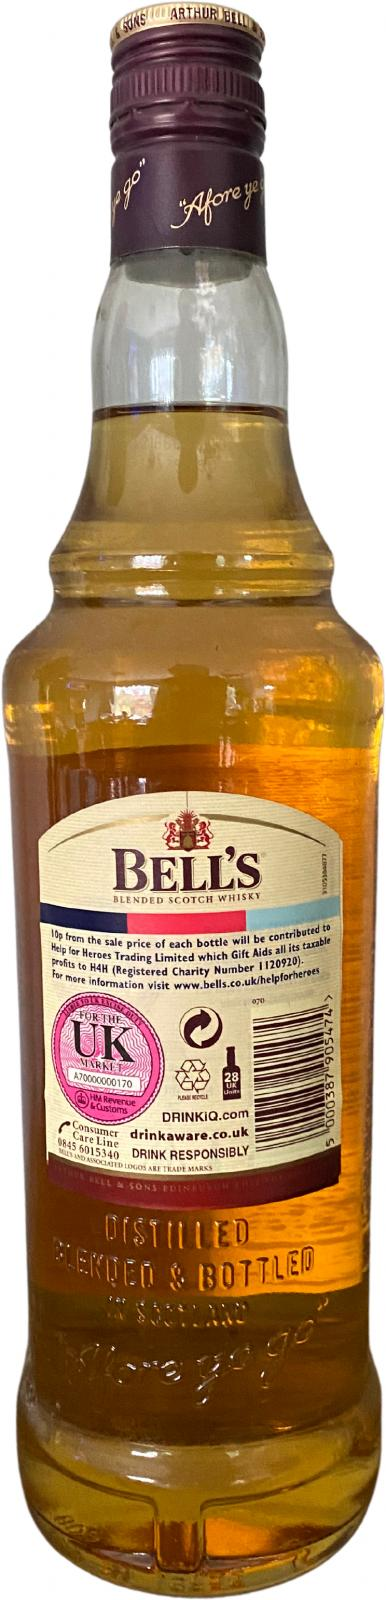 Bell's Help for Heroes